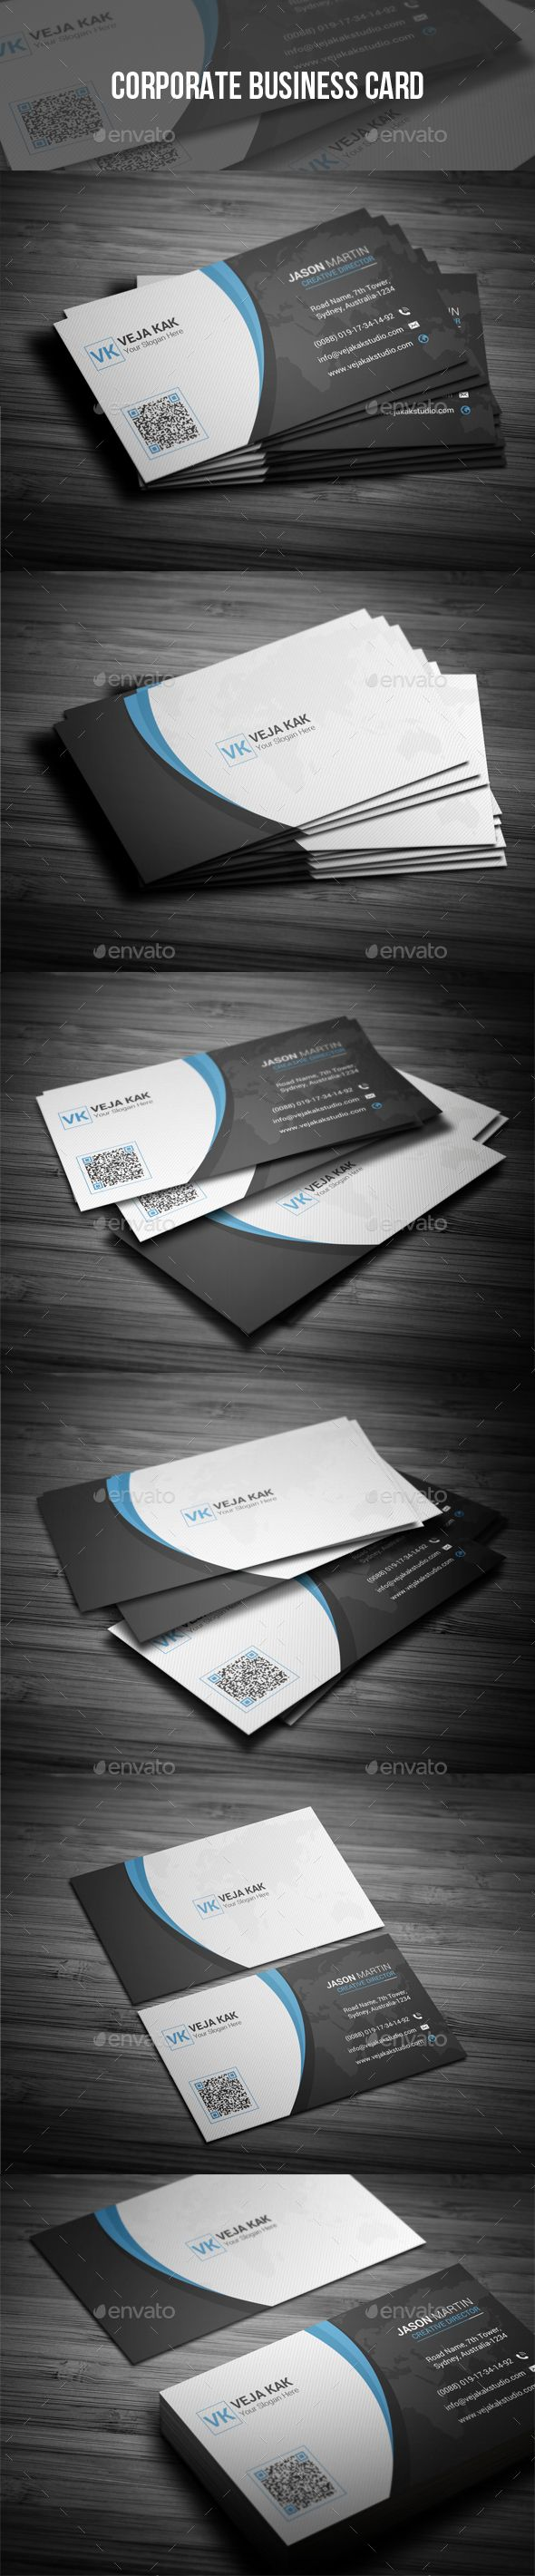 The 29 best Business Card Design Ispiration images on Pinterest ...